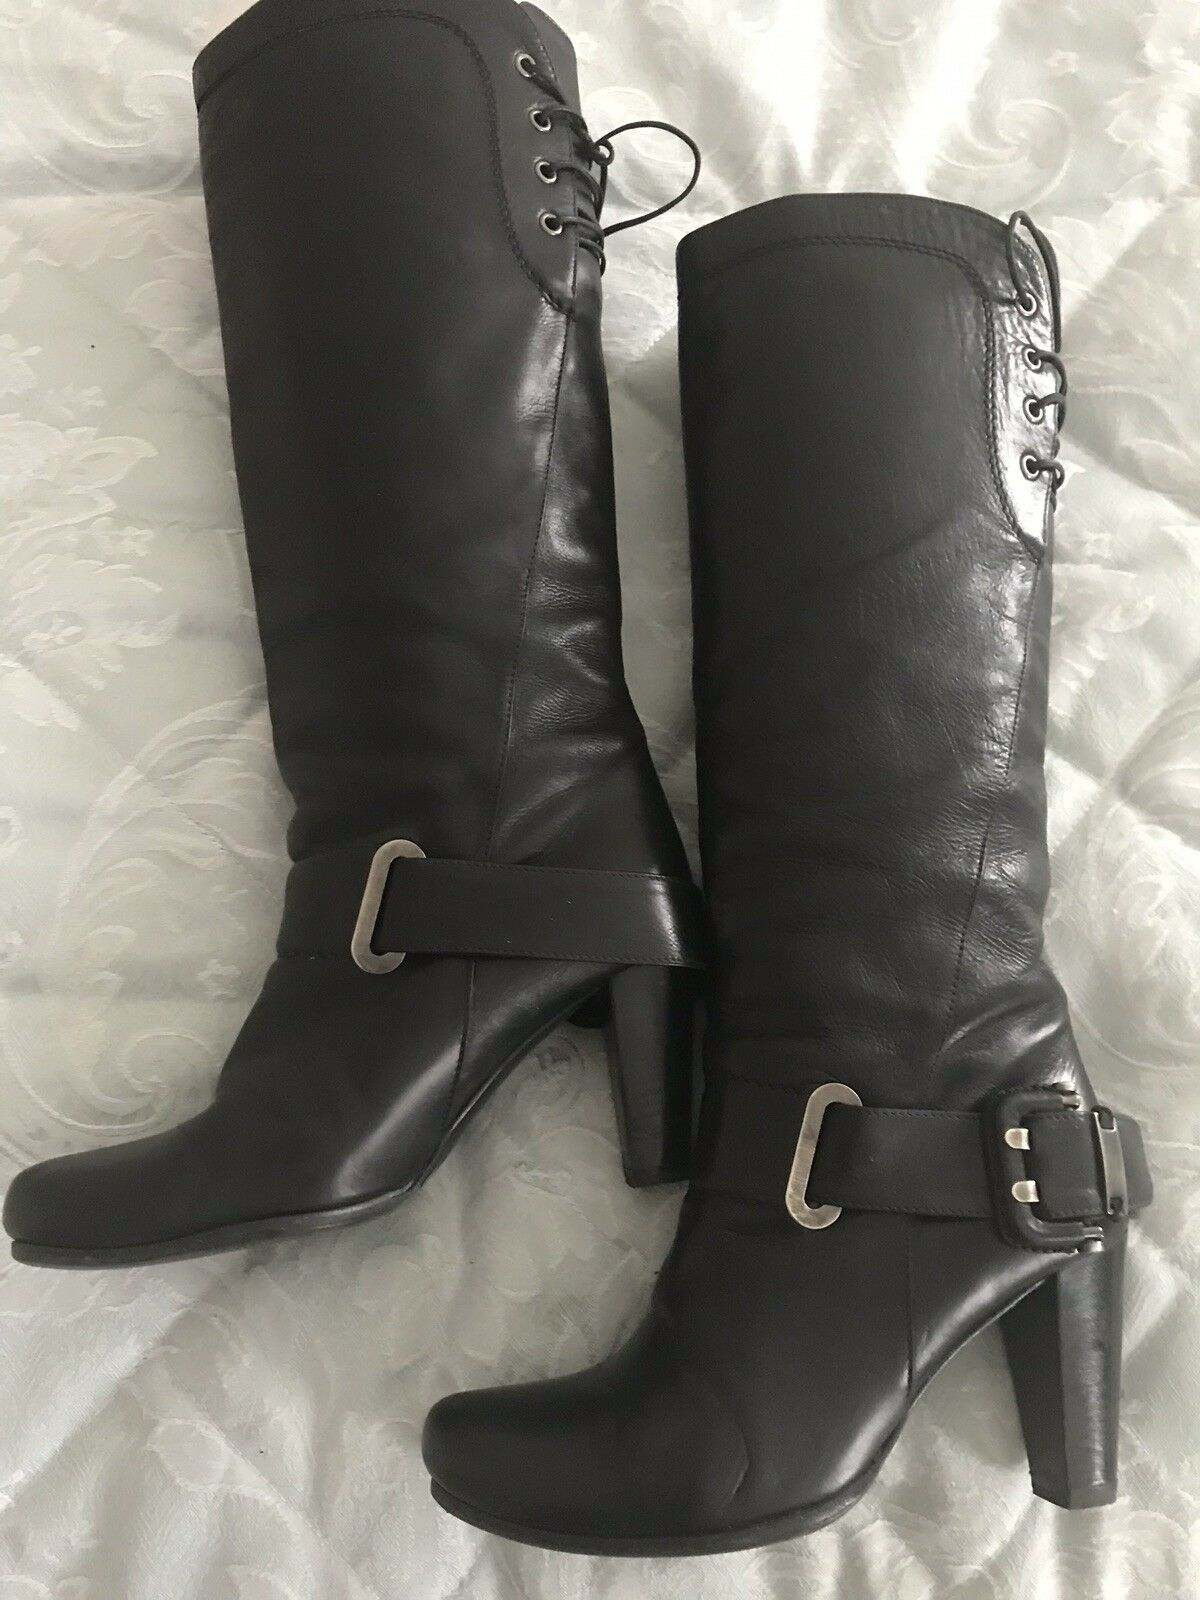 DANIEL Black Leather Boots With Buckle UK3 EU36